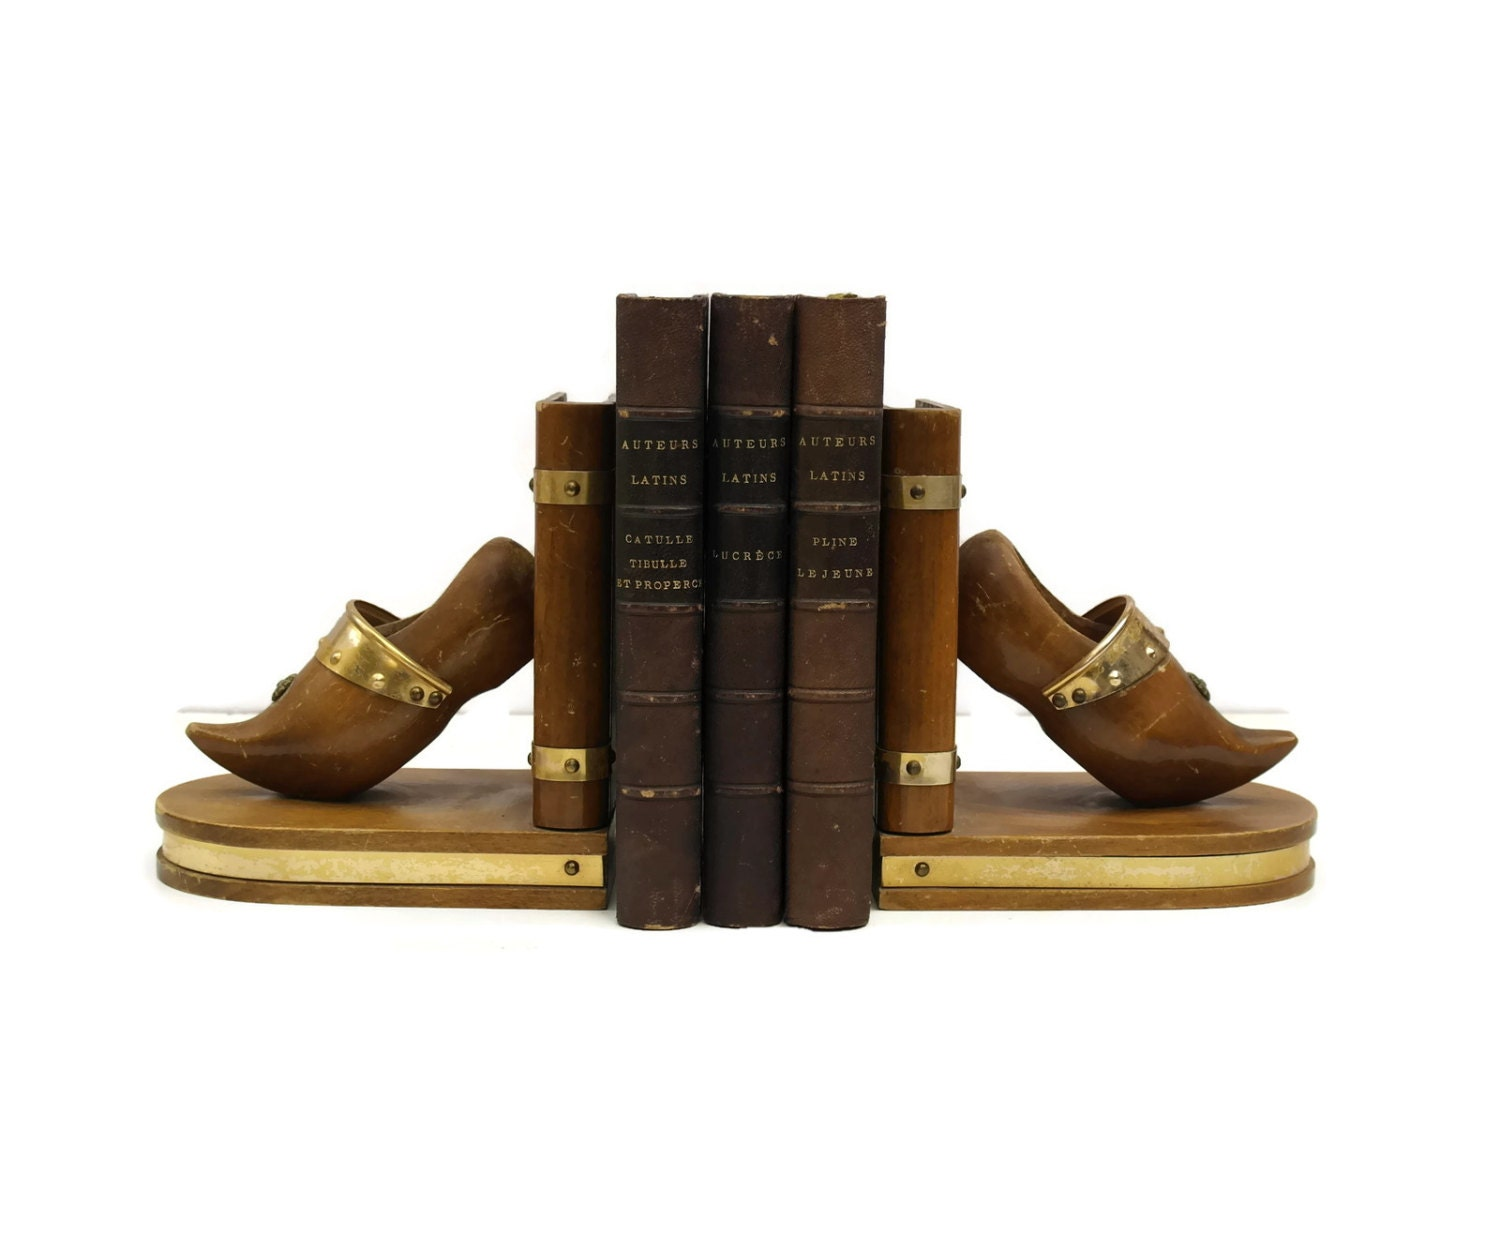 9016b6c049c19 Vintage French Clog Bookends. Vintage Wooden Bookends. French ...